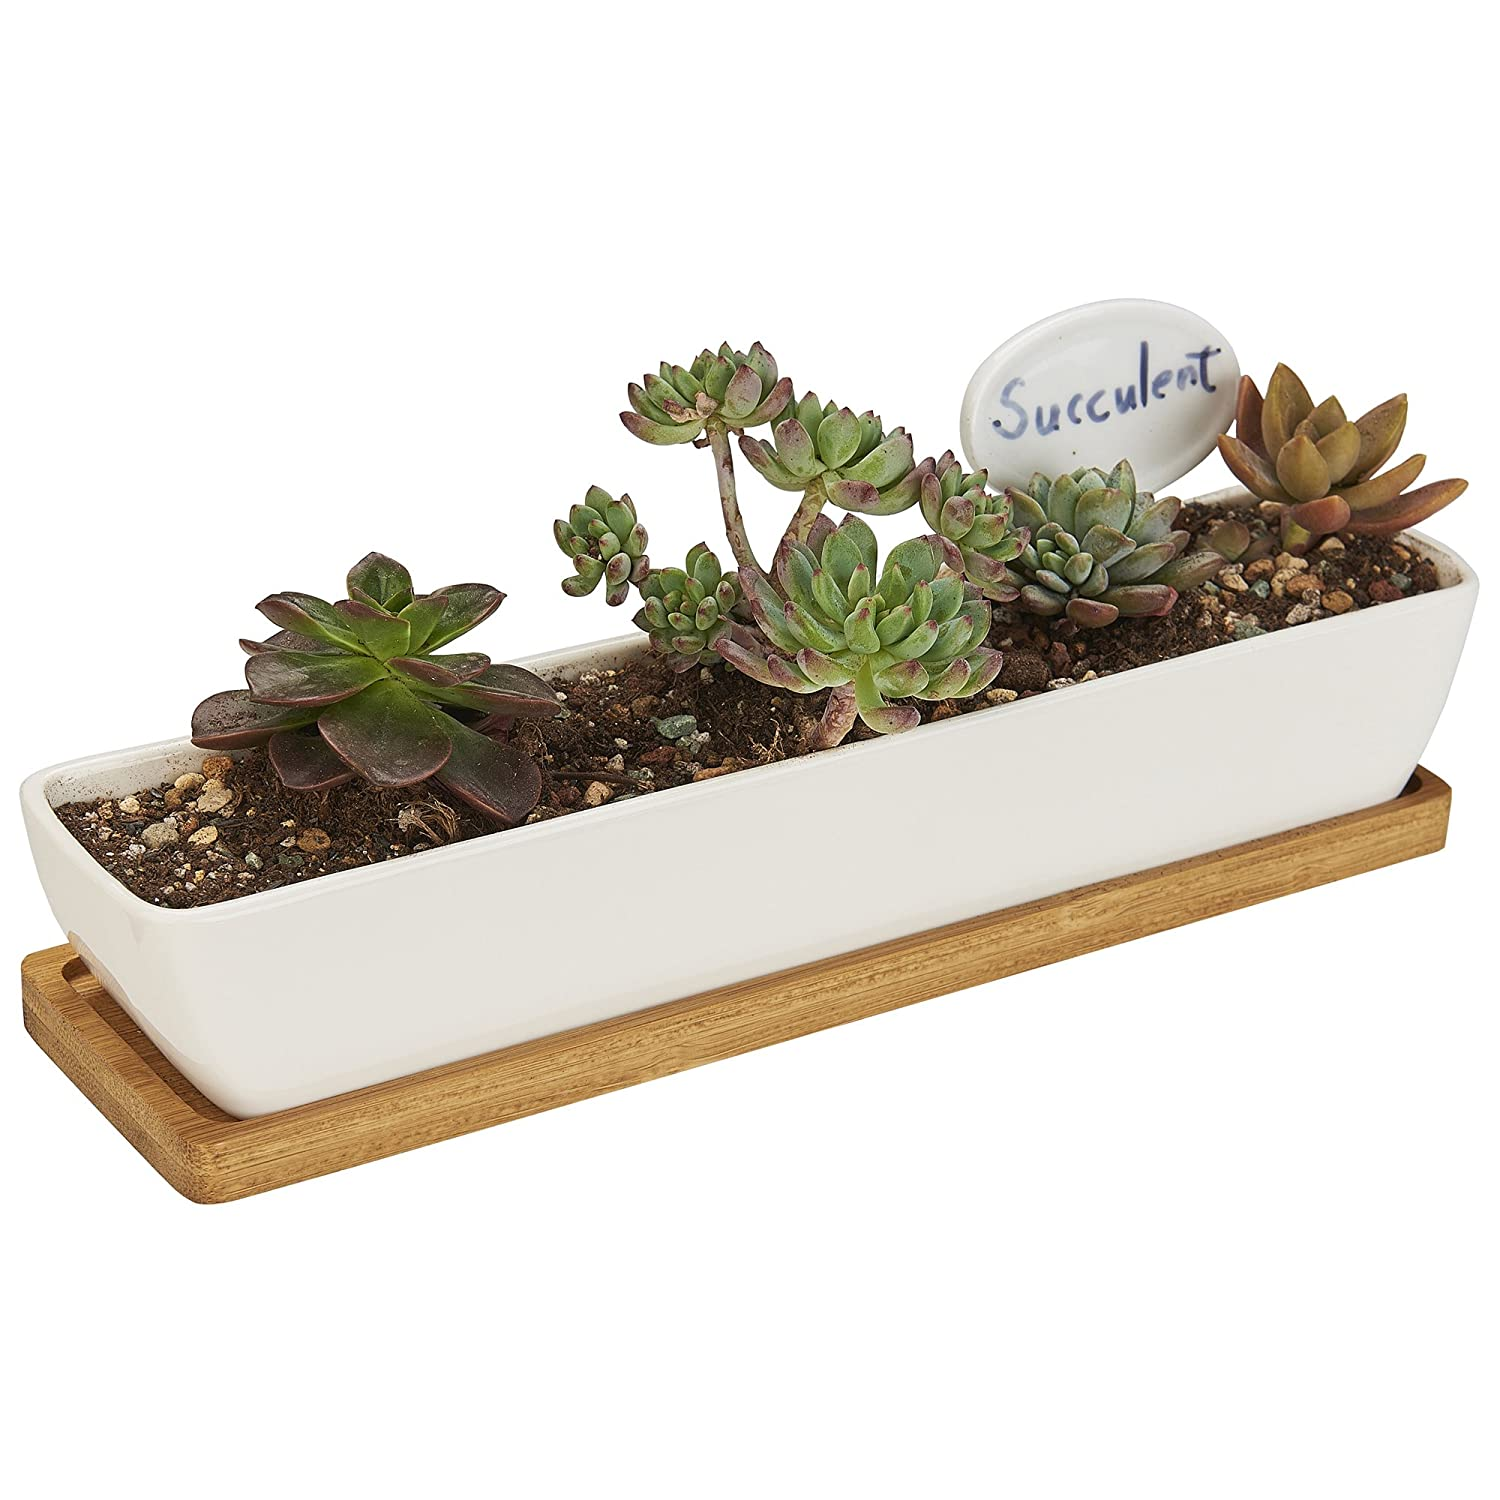 FLOWERPLUS Planter Pot Indoor, 11 Inch Long Rectangle White Ceramic Small Succulent Cactus Flower Plant Container with Bamboo Base and Little Plants Sign for Indoors Outdoor Home Garden Kitchen Decor